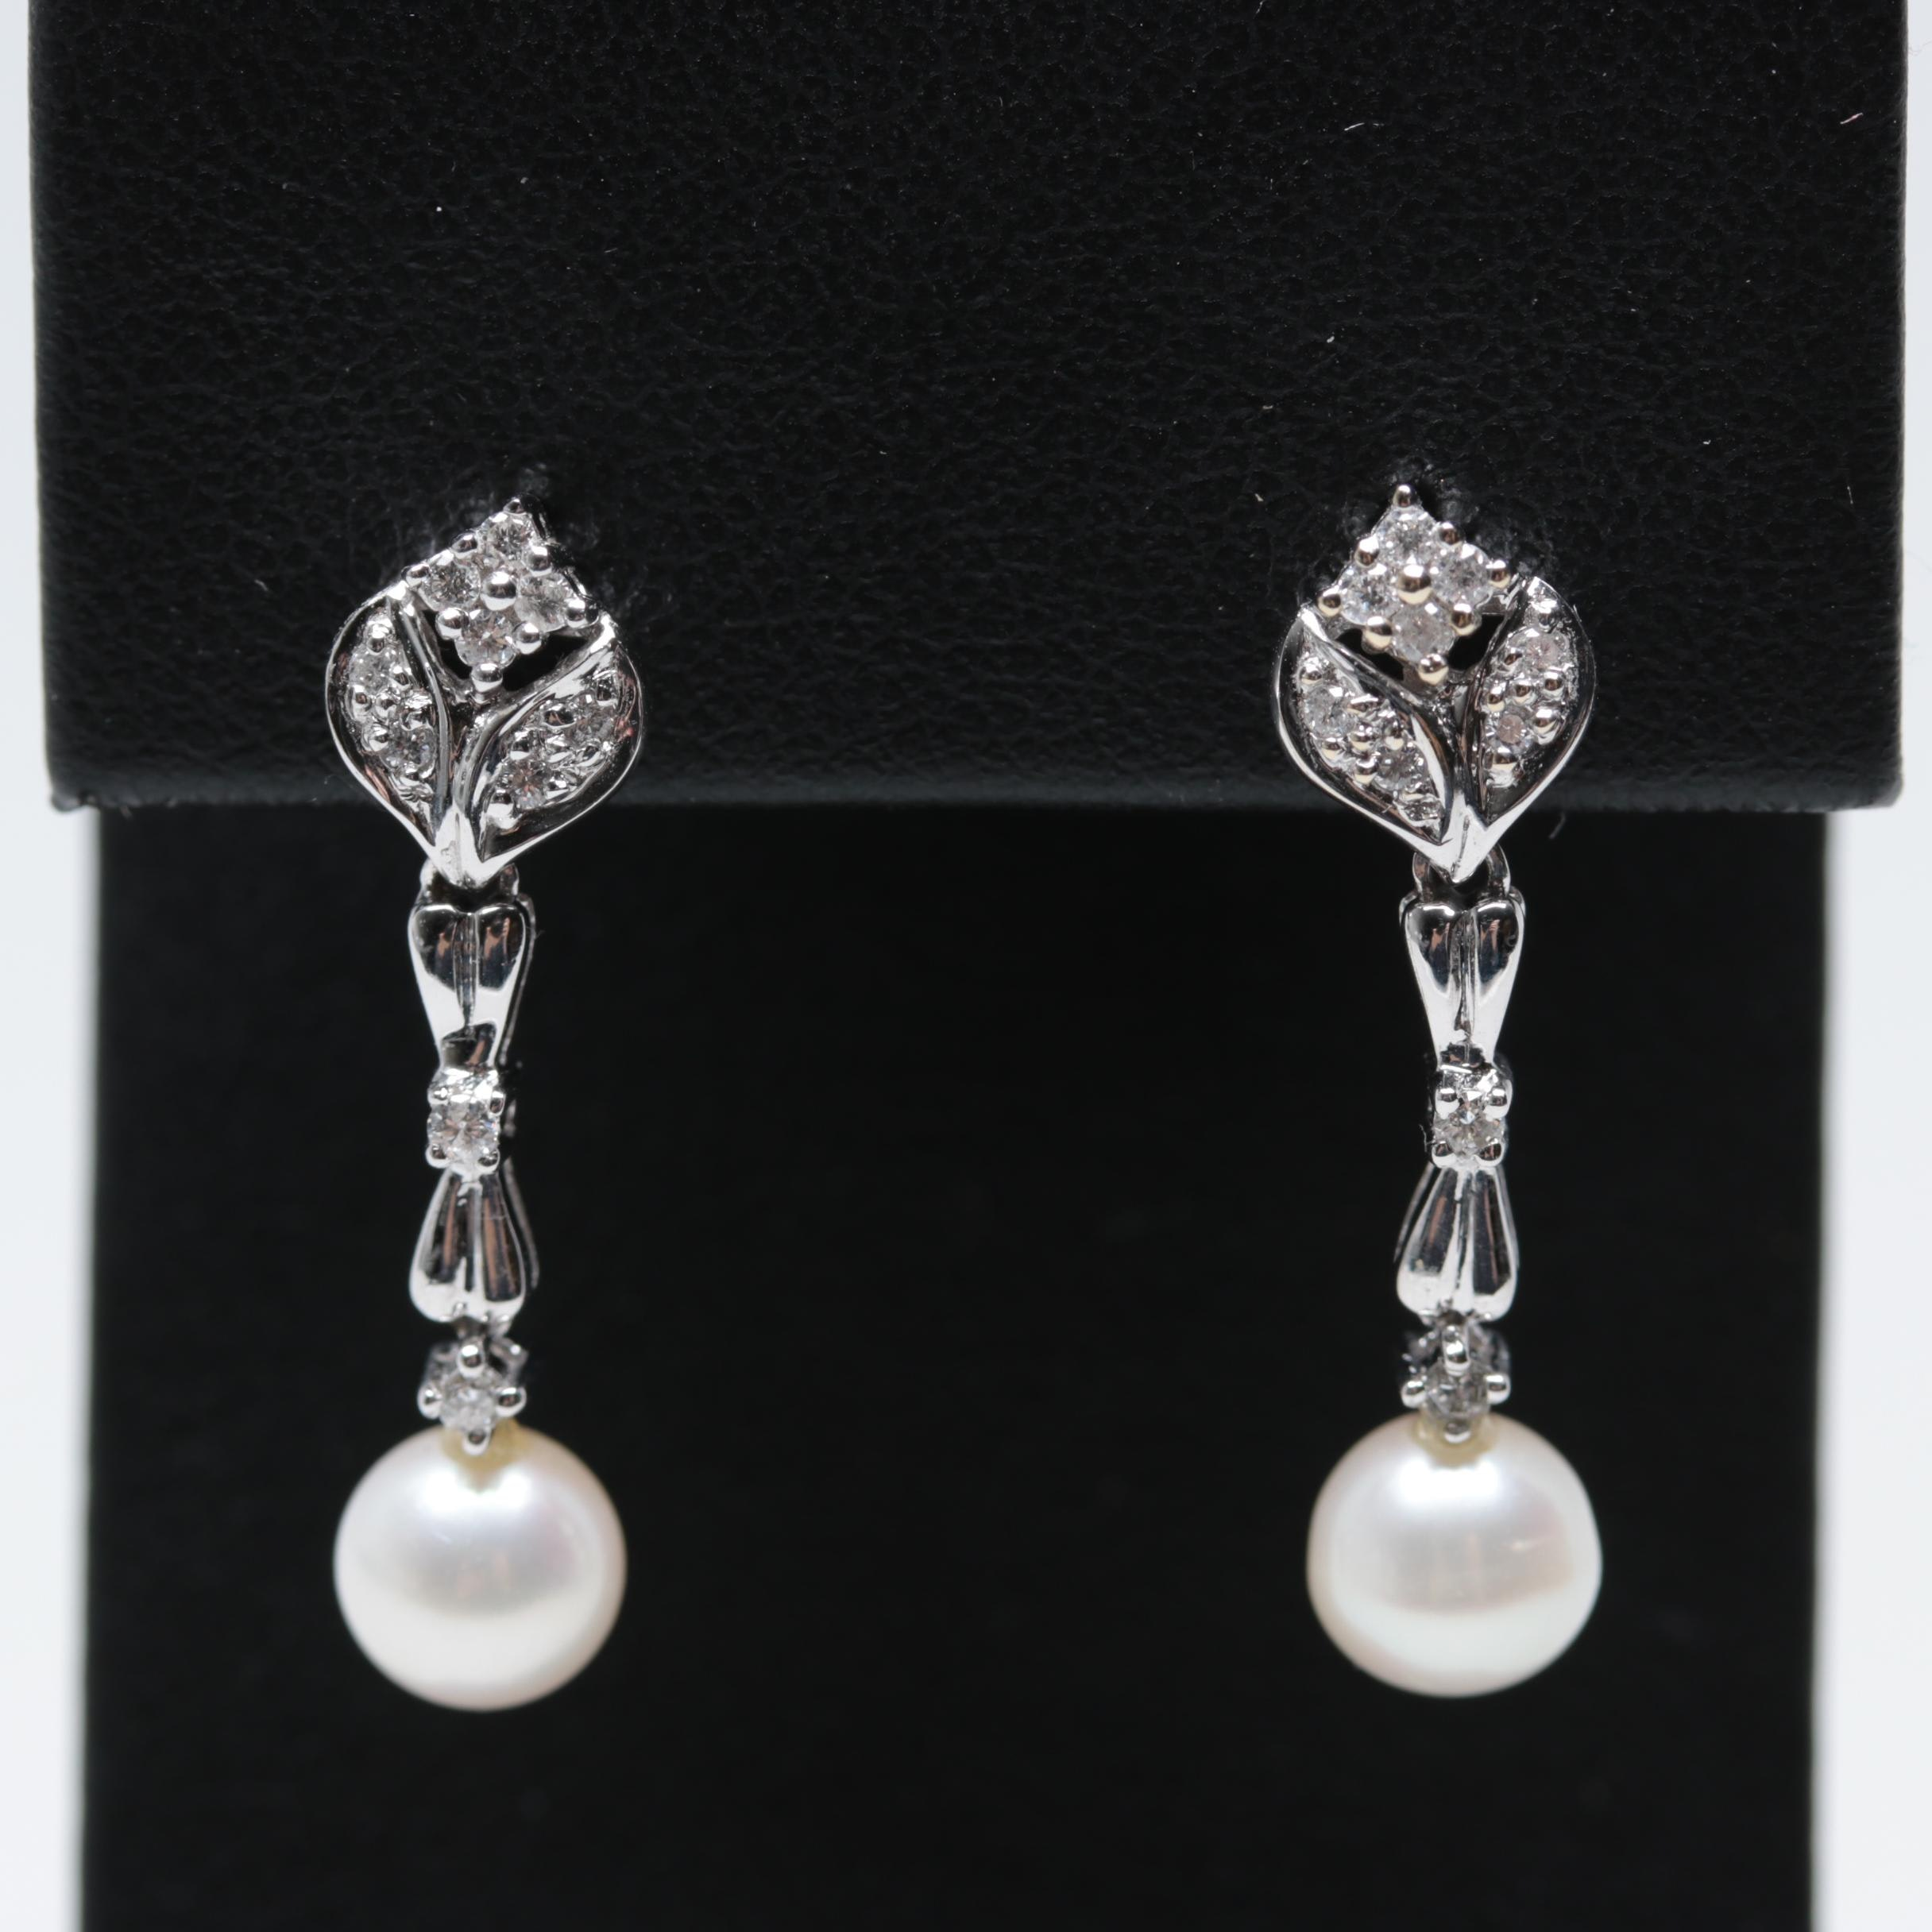 18K White Gold Cultured Pearl and Diamond Drop Earrings